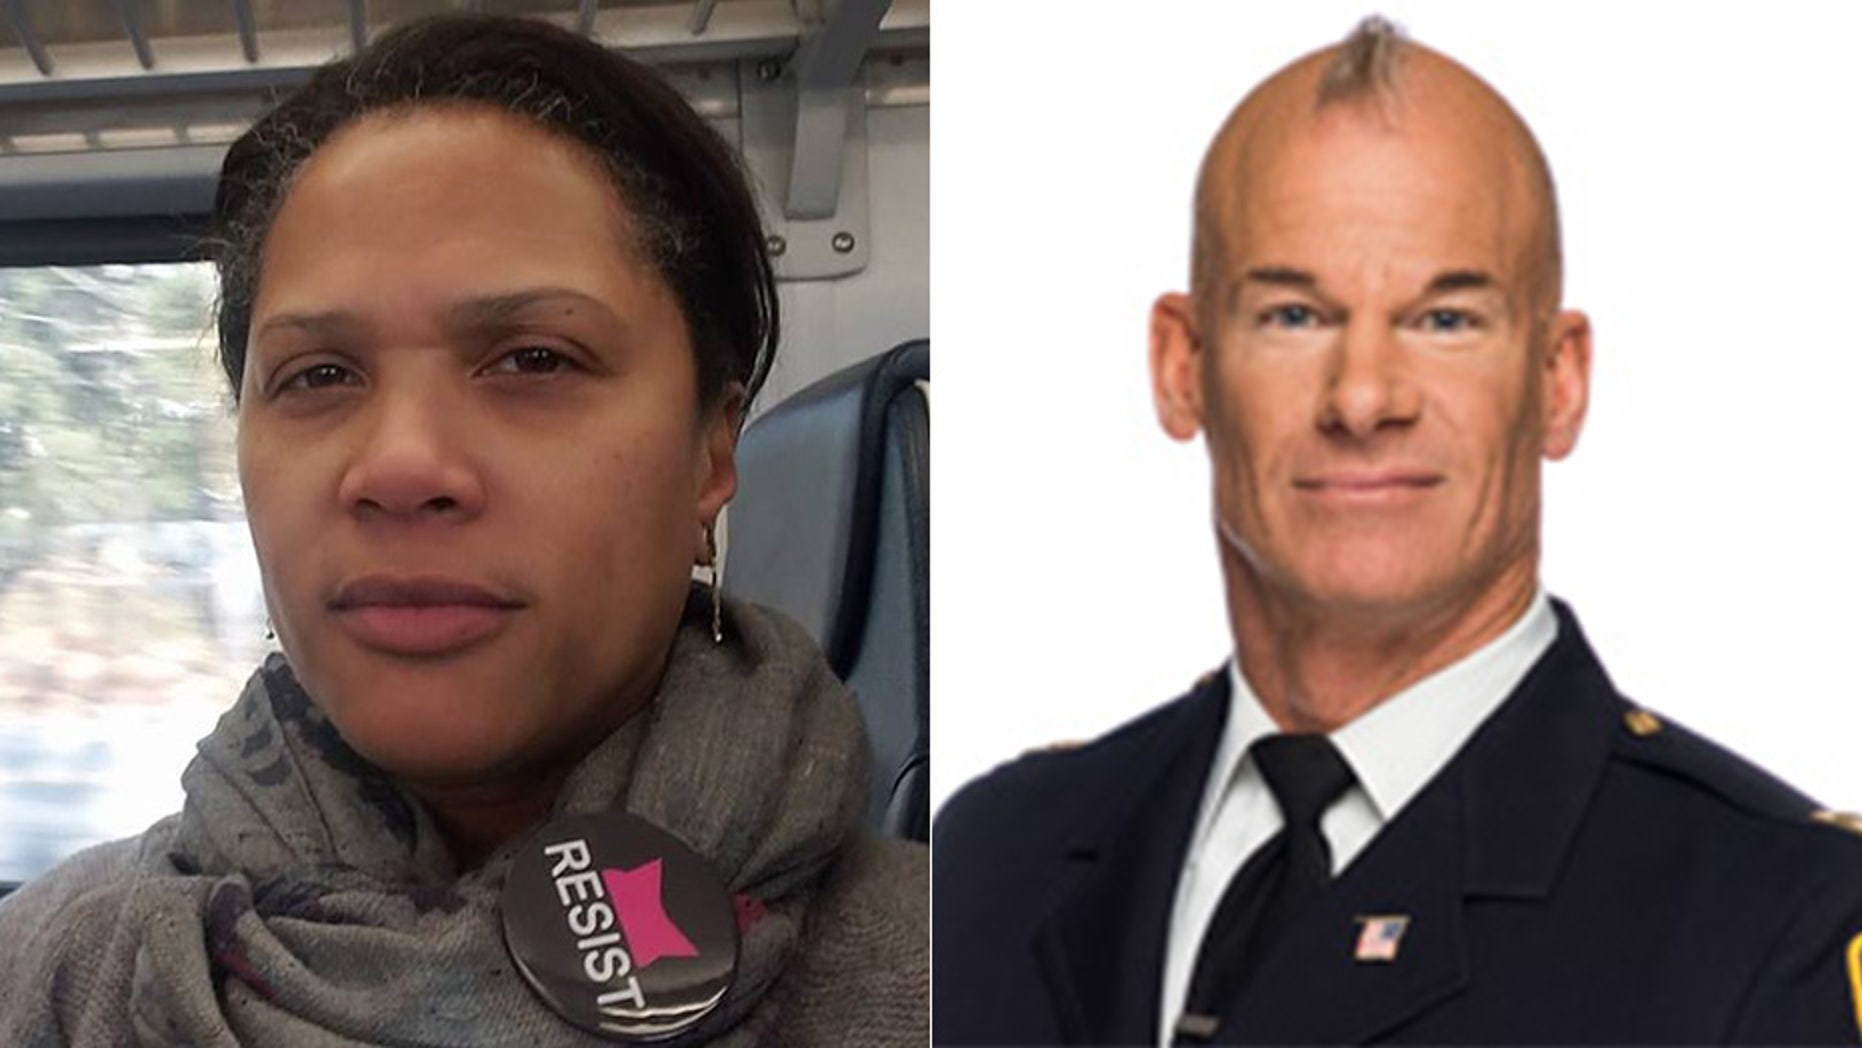 Stephanie Lawson-Muhammad says she has apologized to South Orange Police Chief Kyle Kroll, right, who she was heard calling a 'skinhead' in a video that emerged after she was pulled over for speeding on April 27.